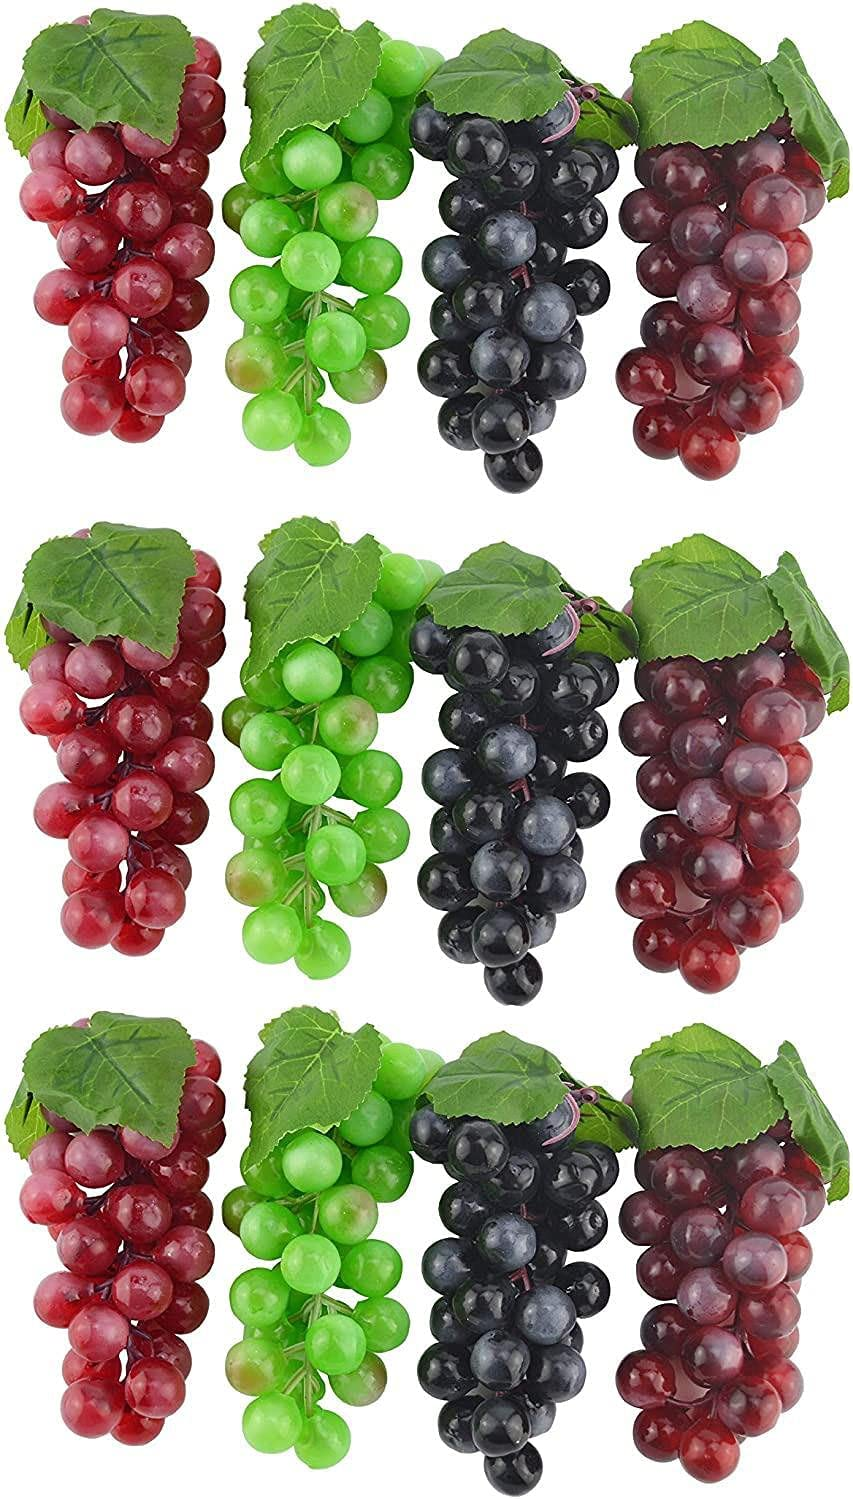 Mesa Mall 6.3 Inches Japan Maker New Artificial Grapes Cluster Rubber Bundle Grape Frosted